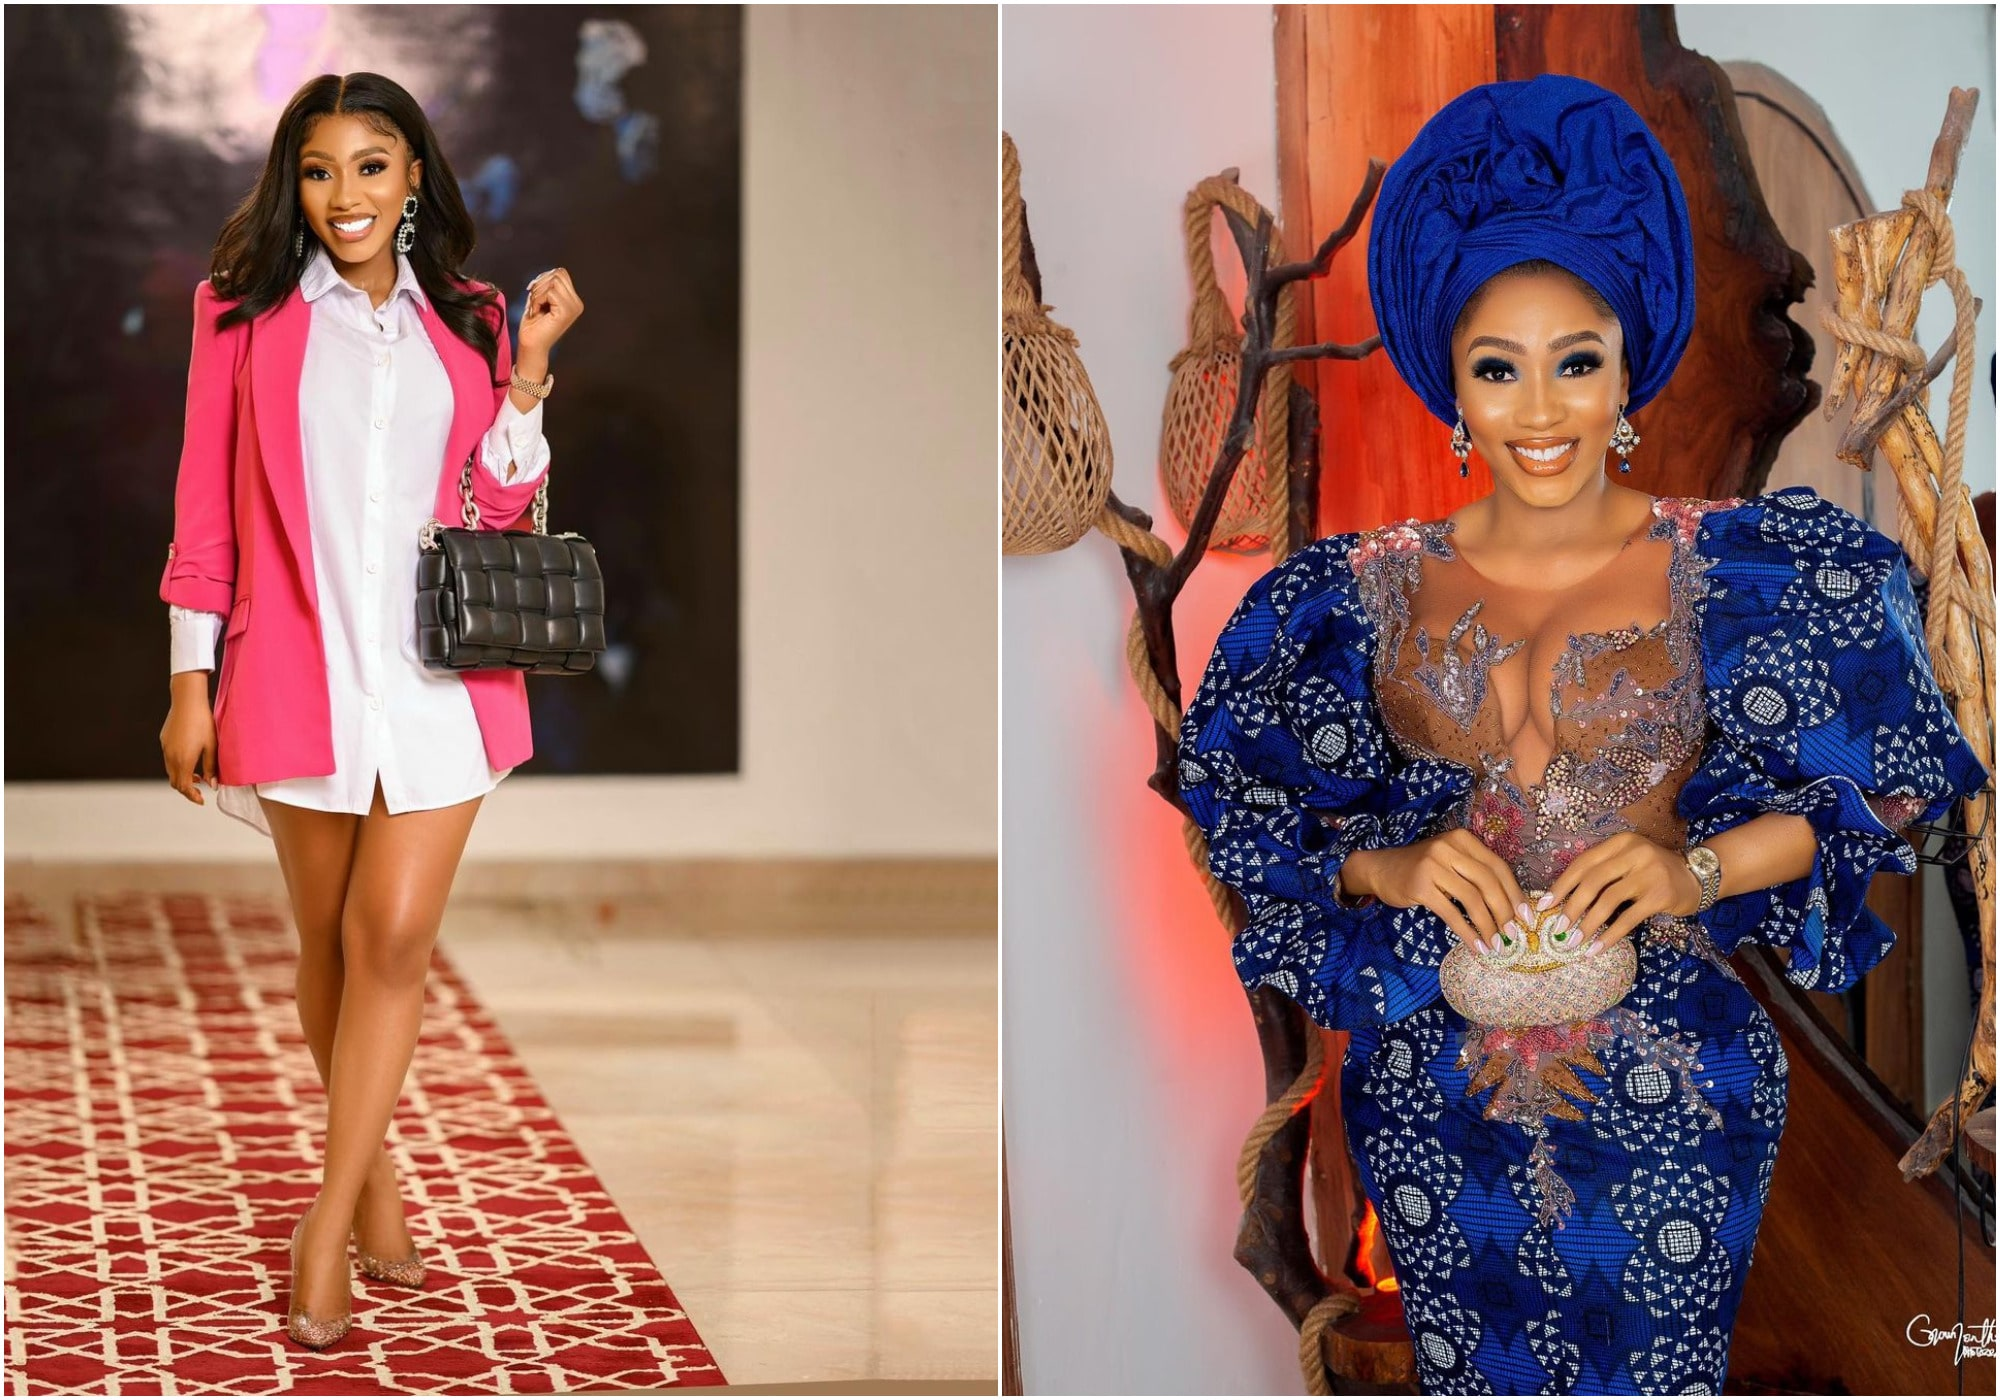 fans bash Mercy Eke over why she stays at home - KFN